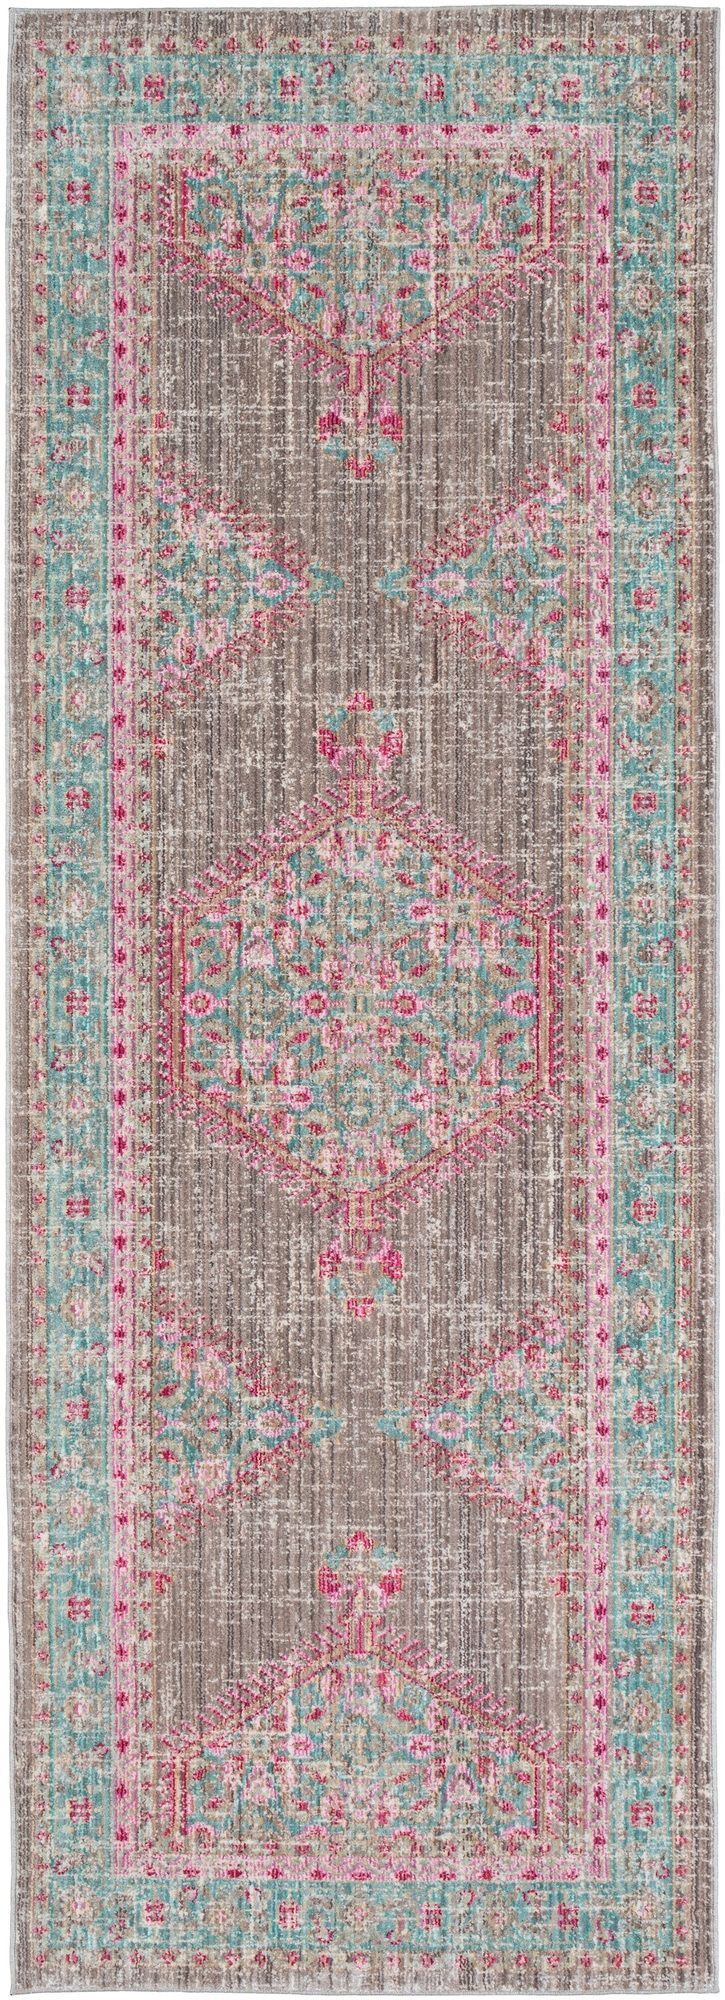 Rectangular Runner Teal Taupe Bright Pink Products In